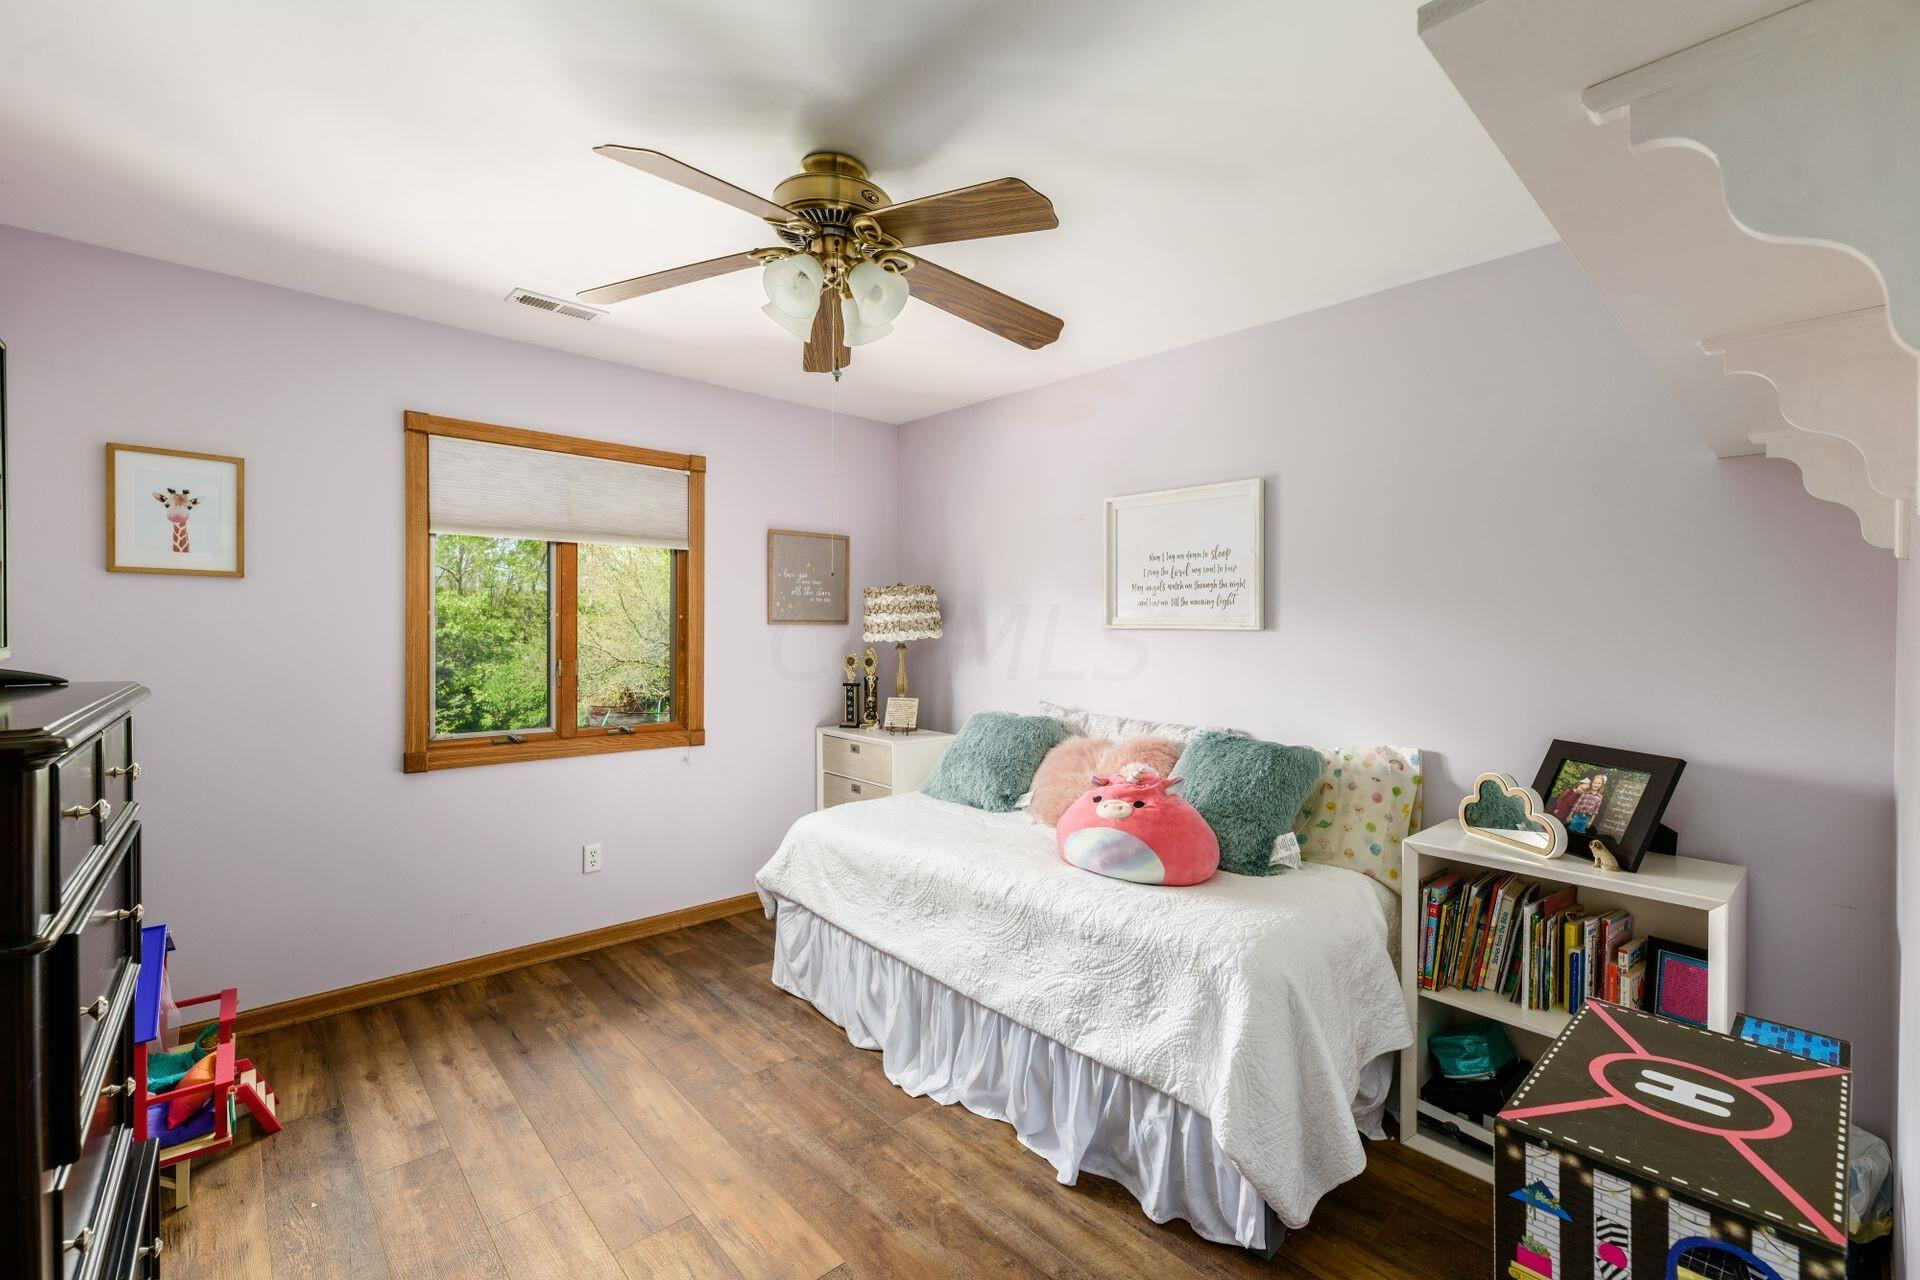 ANOTHER OPTION BEDROOM